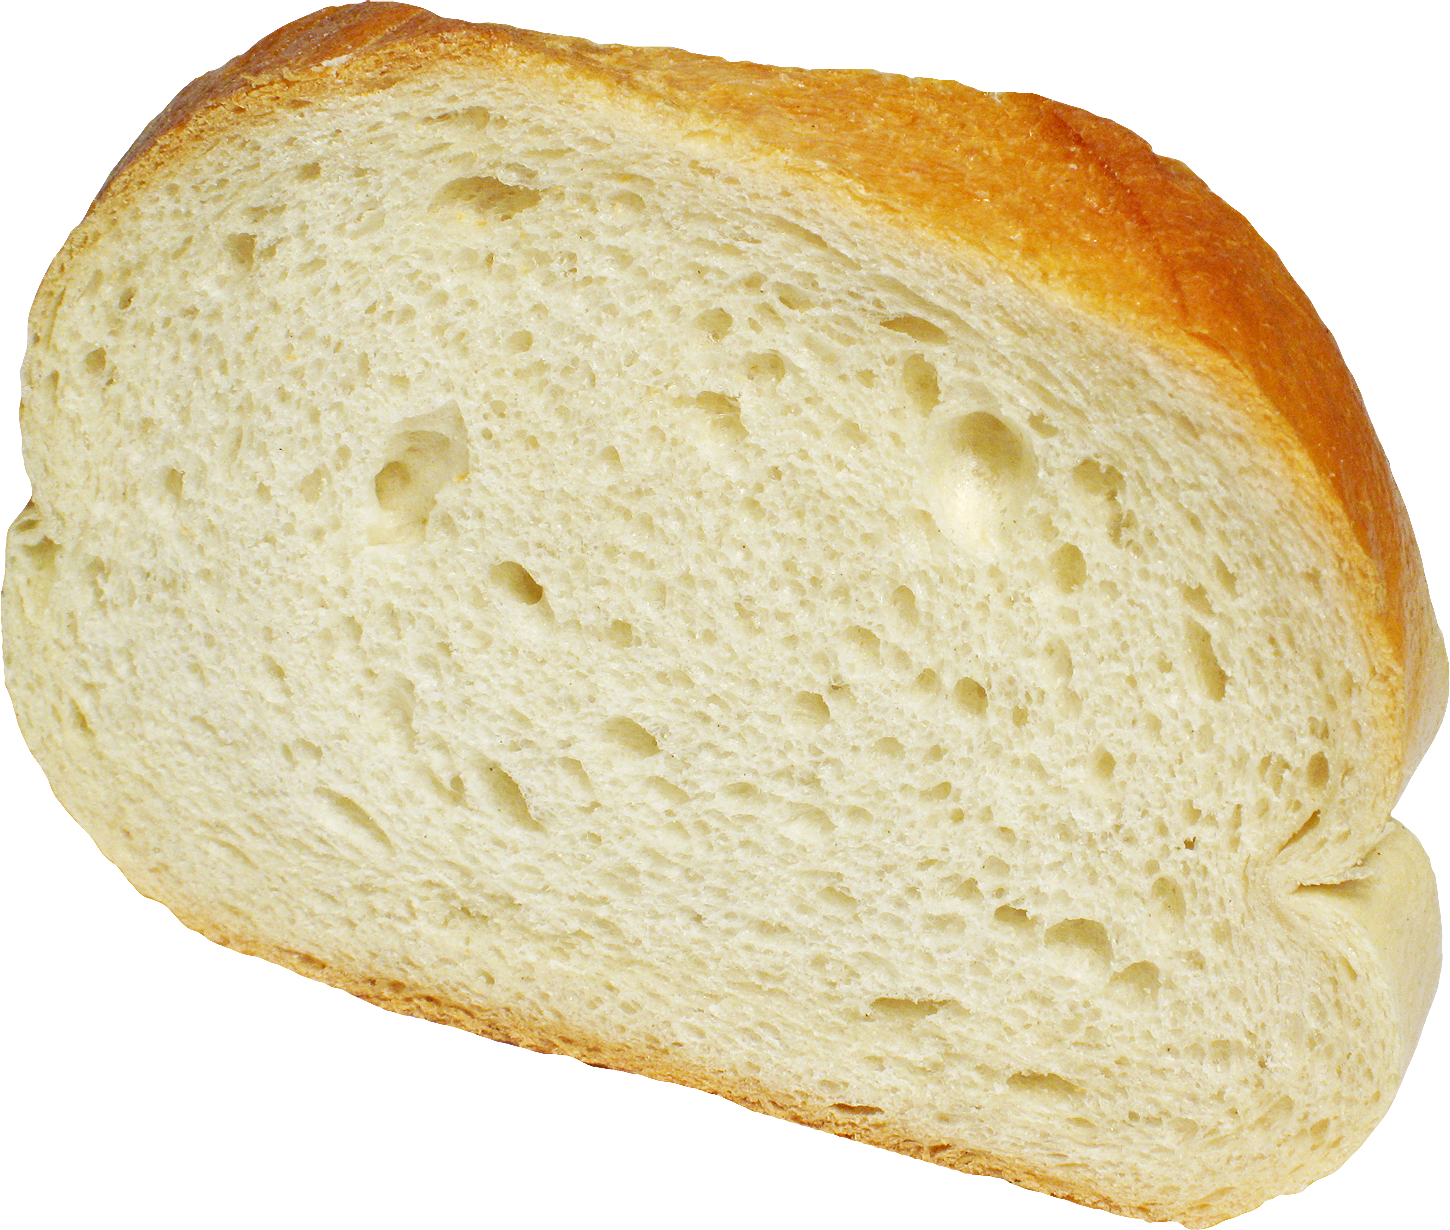 Slice of png image. Clipart bread high quality